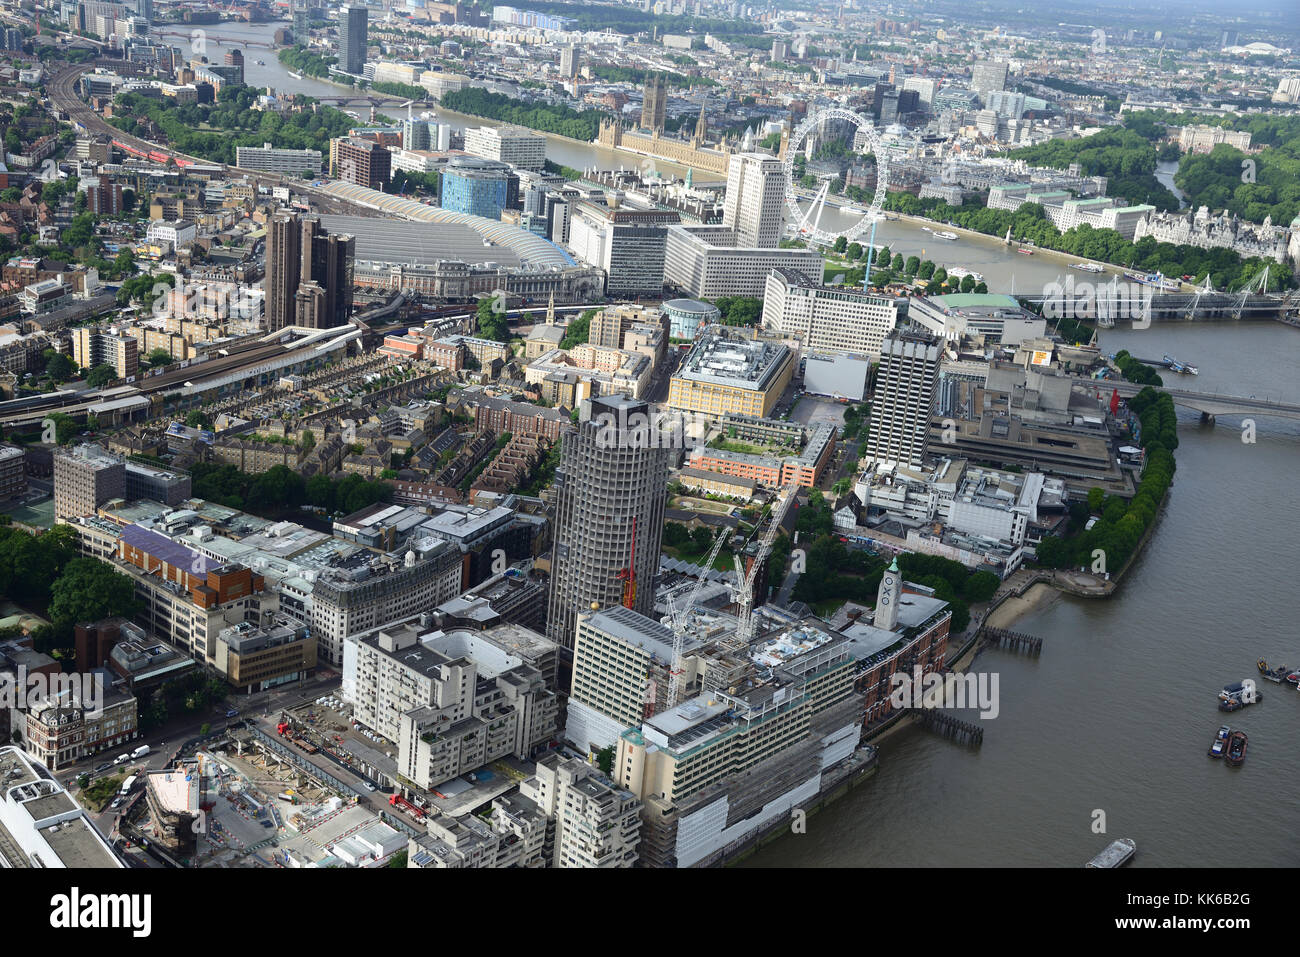 London Aerial Photos - Stock Image